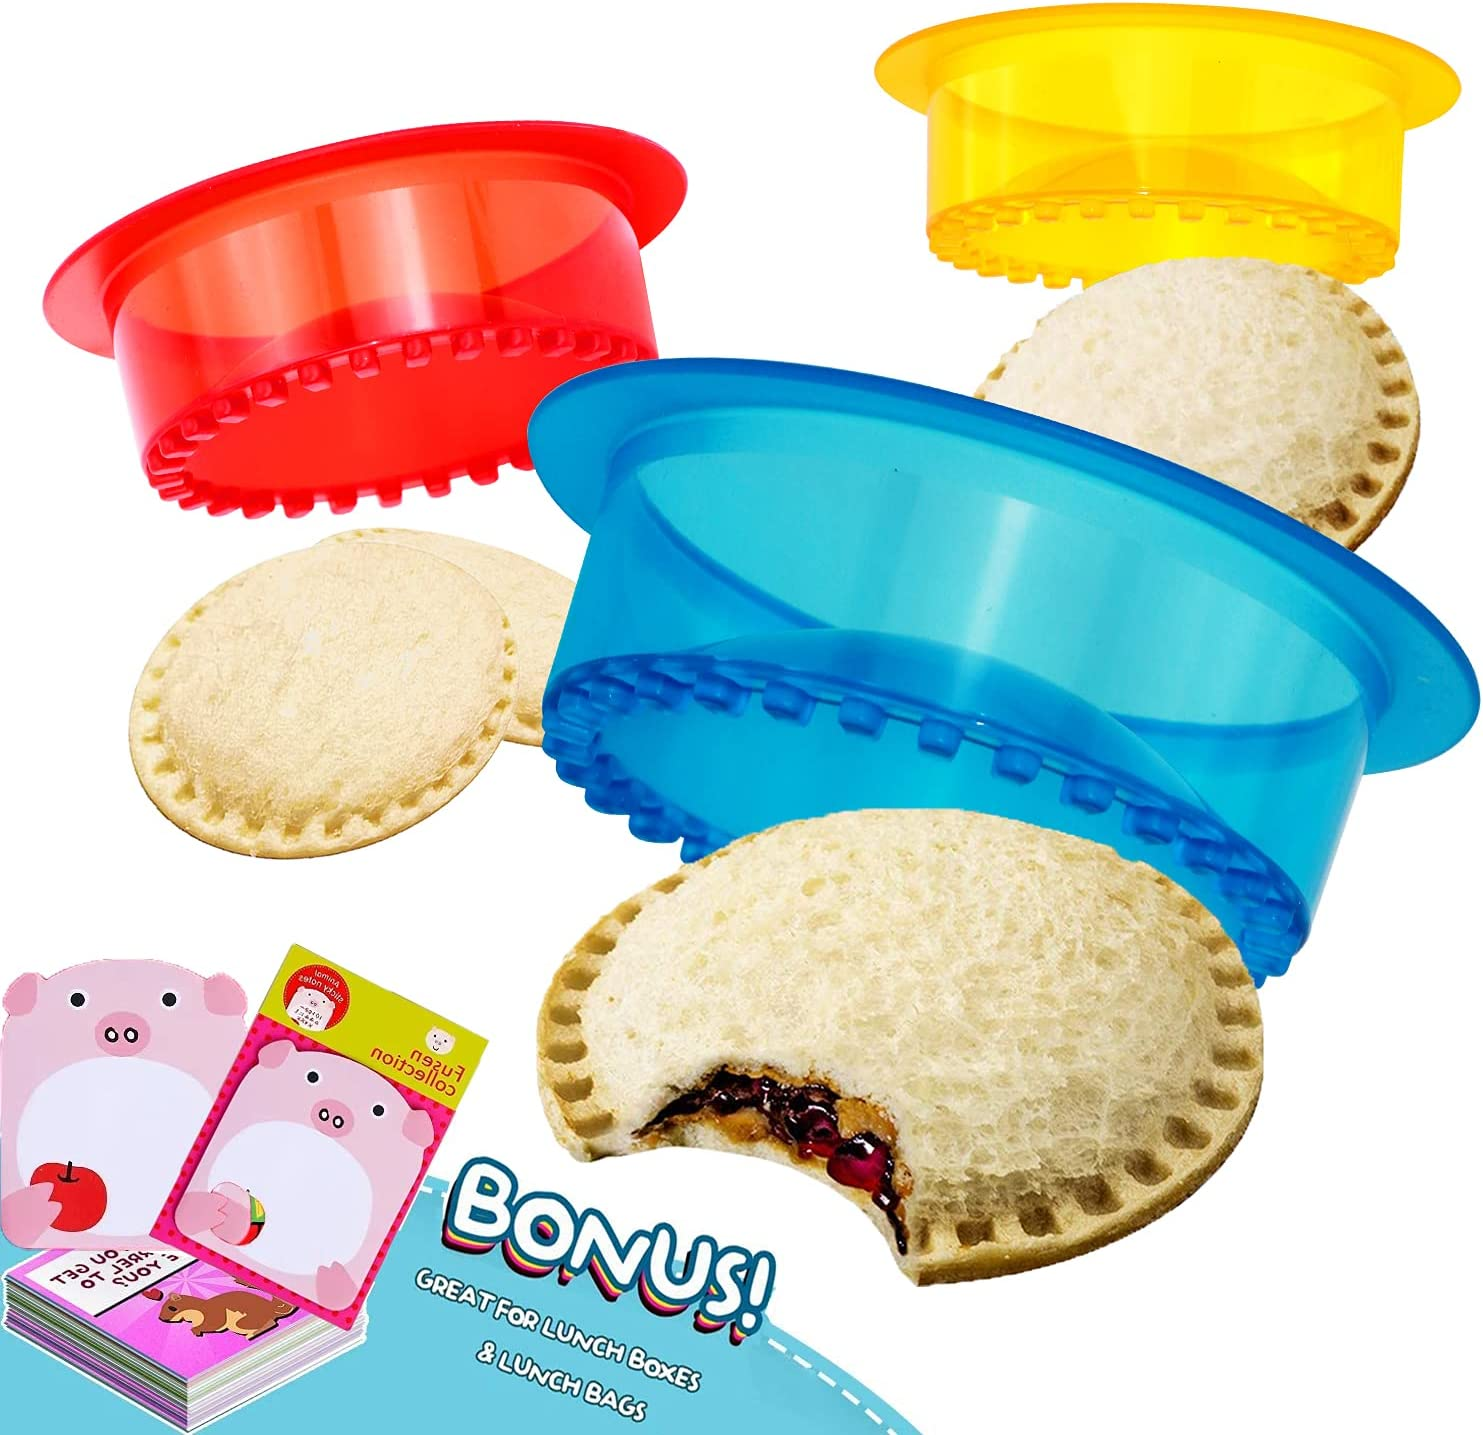 HiYZ Factory outlet Sandwich Cutter and Sealer of Uncrustables New color Pack 5